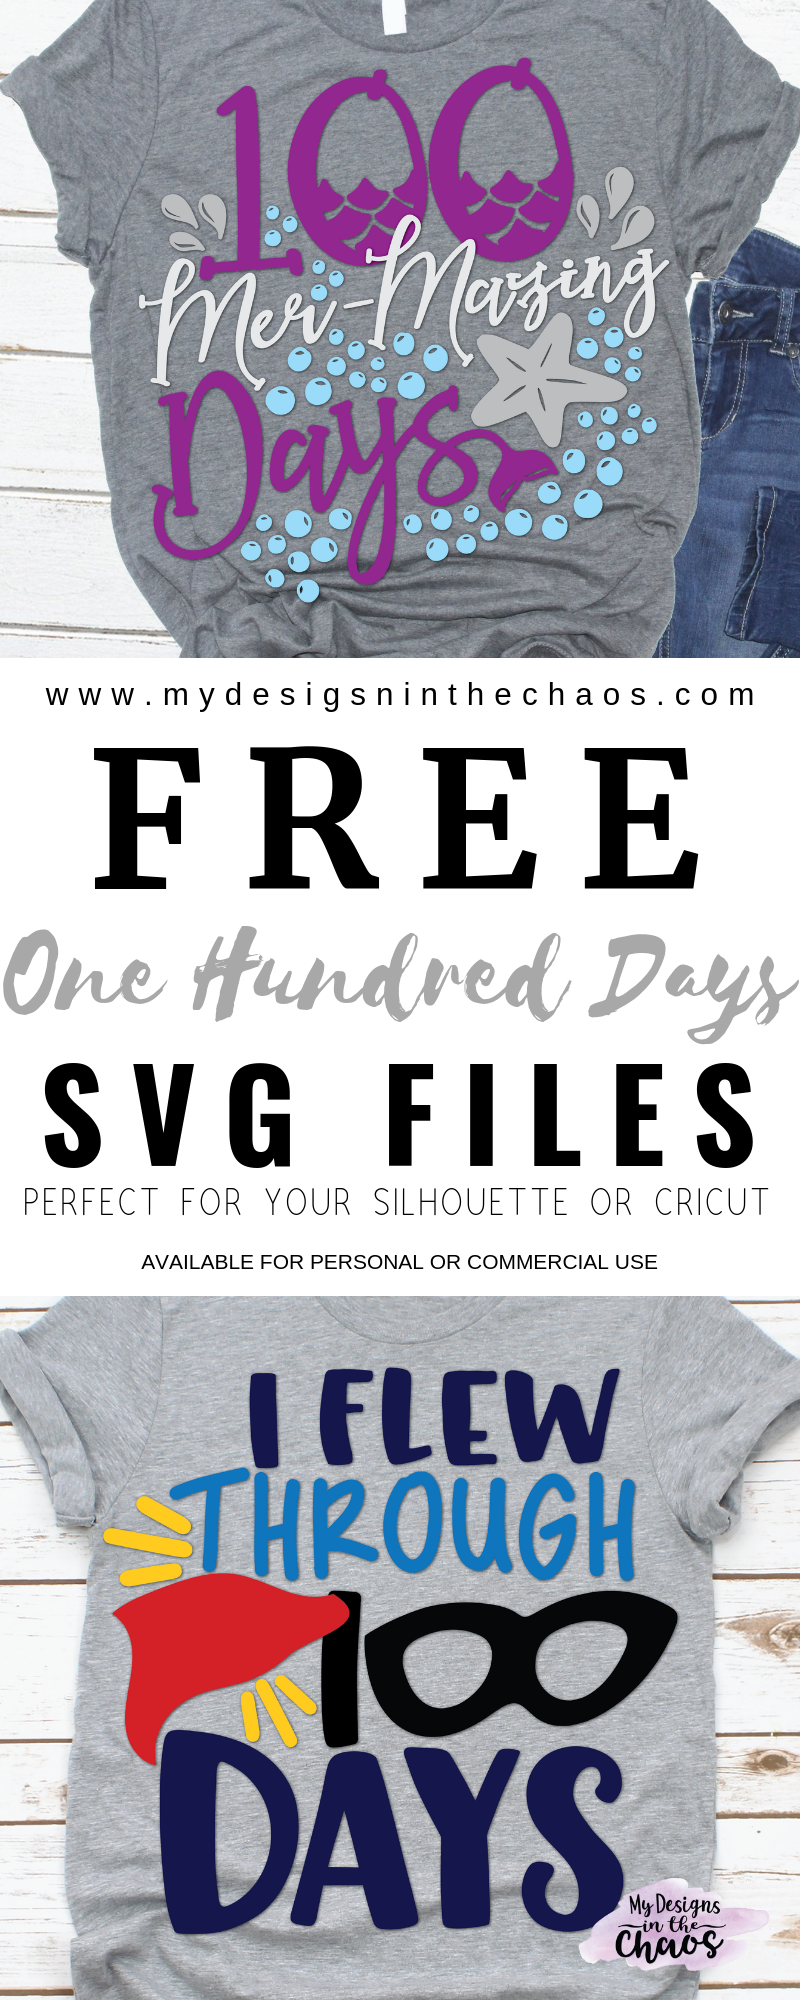 Download Free 100 Days of School SVG Designs - My Designs In the Chaos